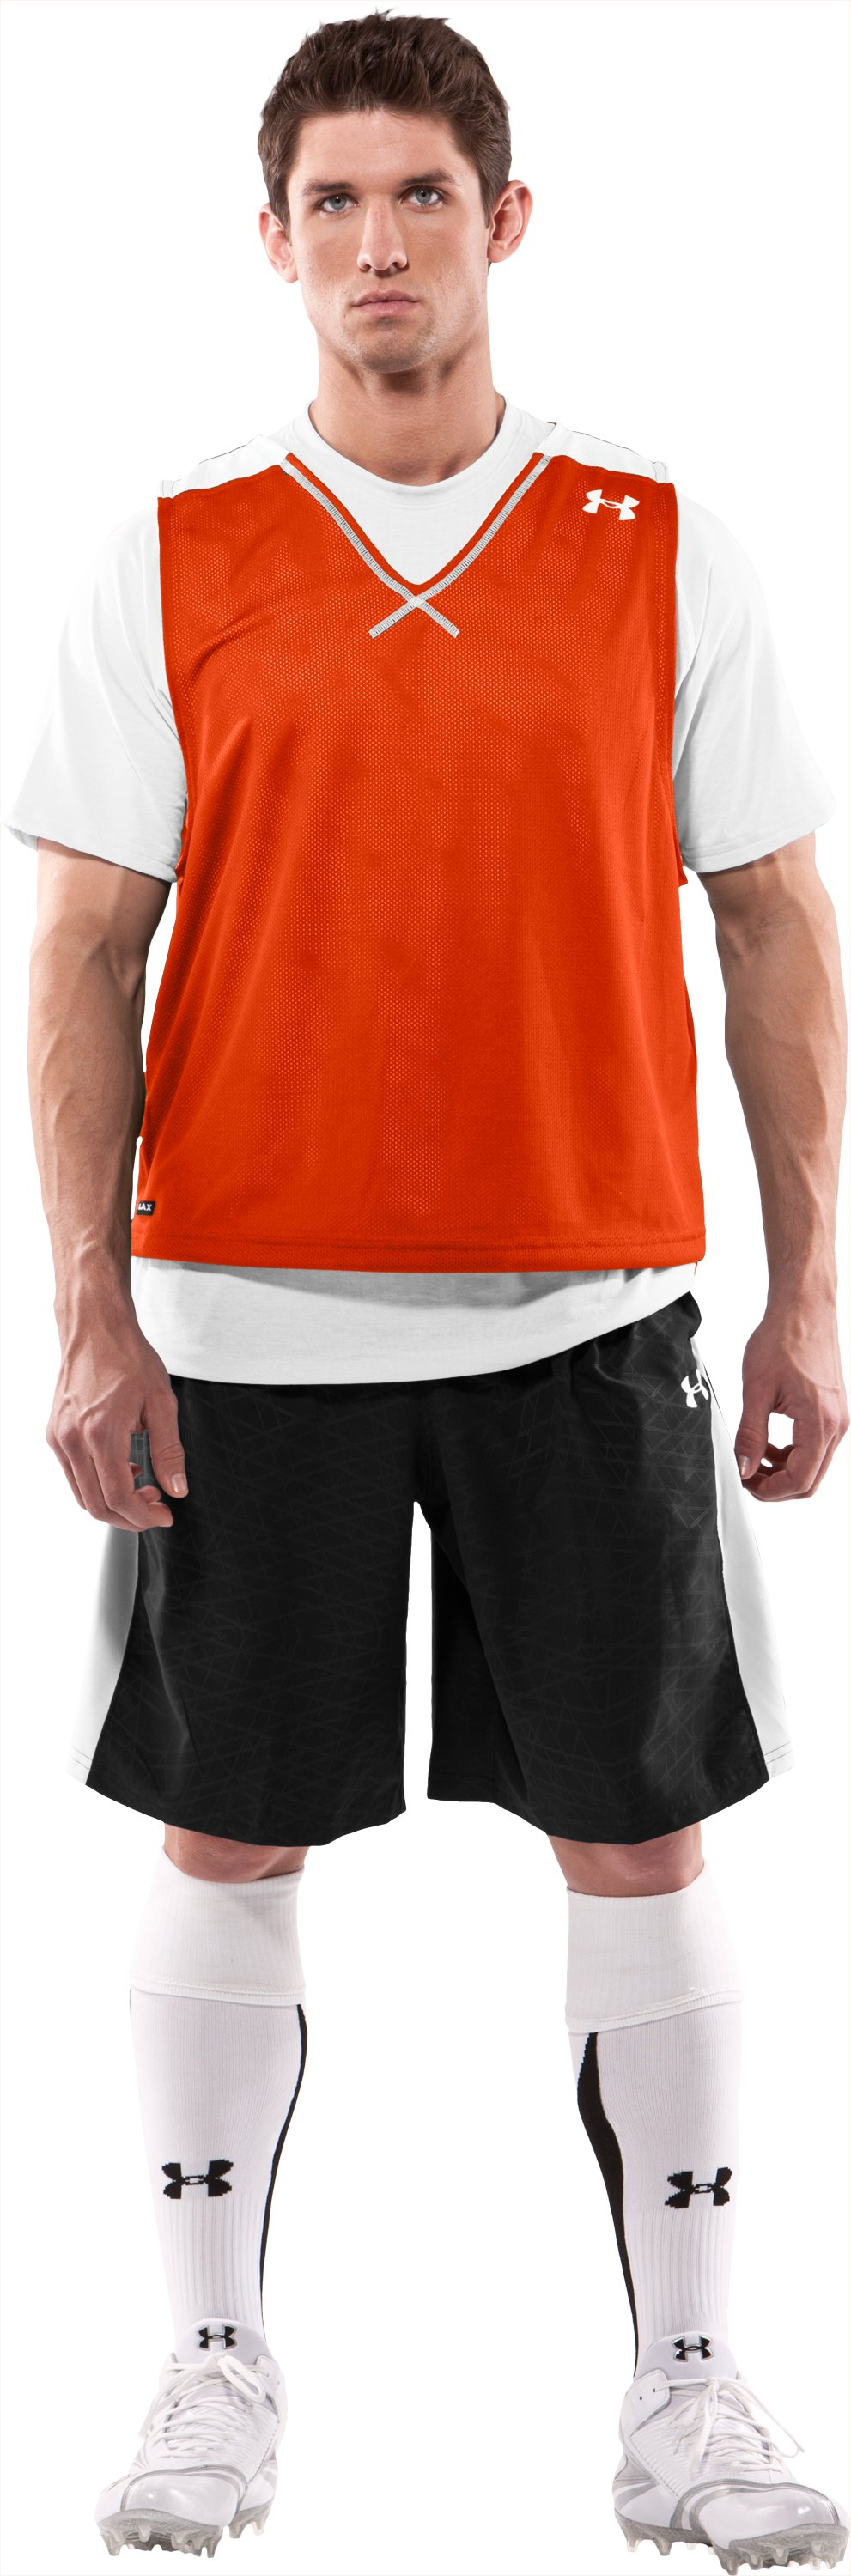 Men's Practice Jersey, Dark Orange